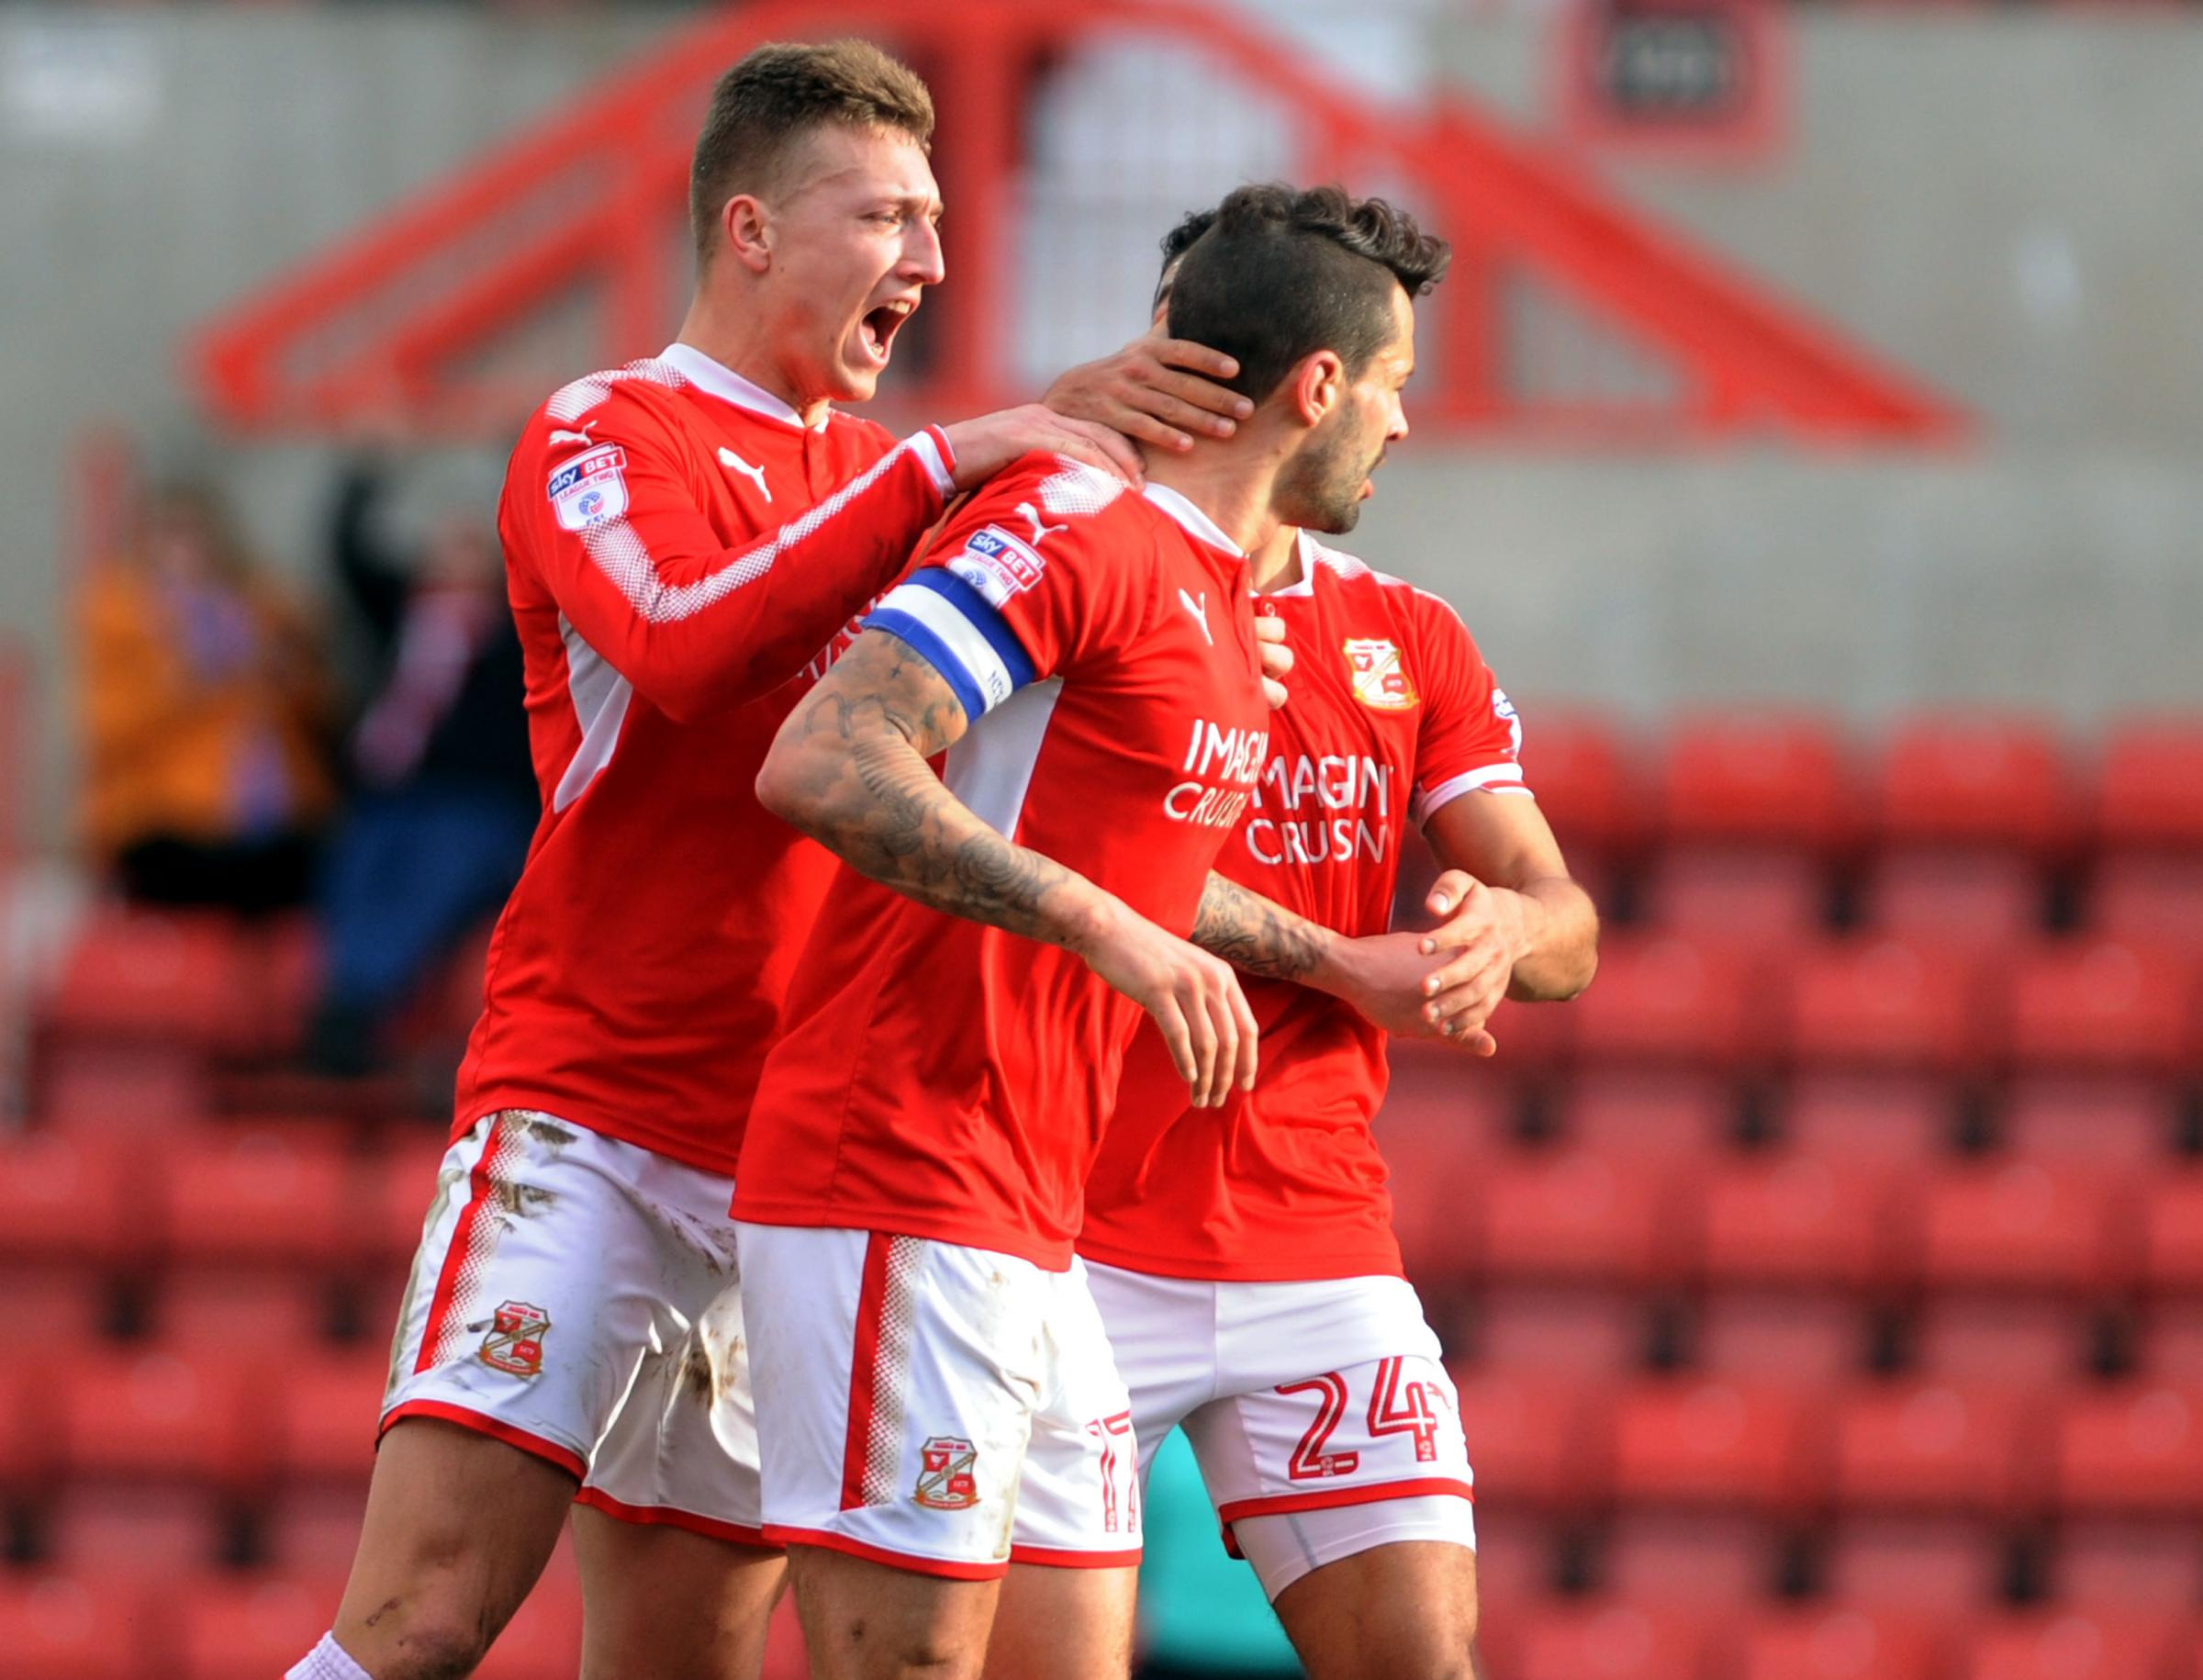 Luke Norris congratulates Marc Richards on a goal